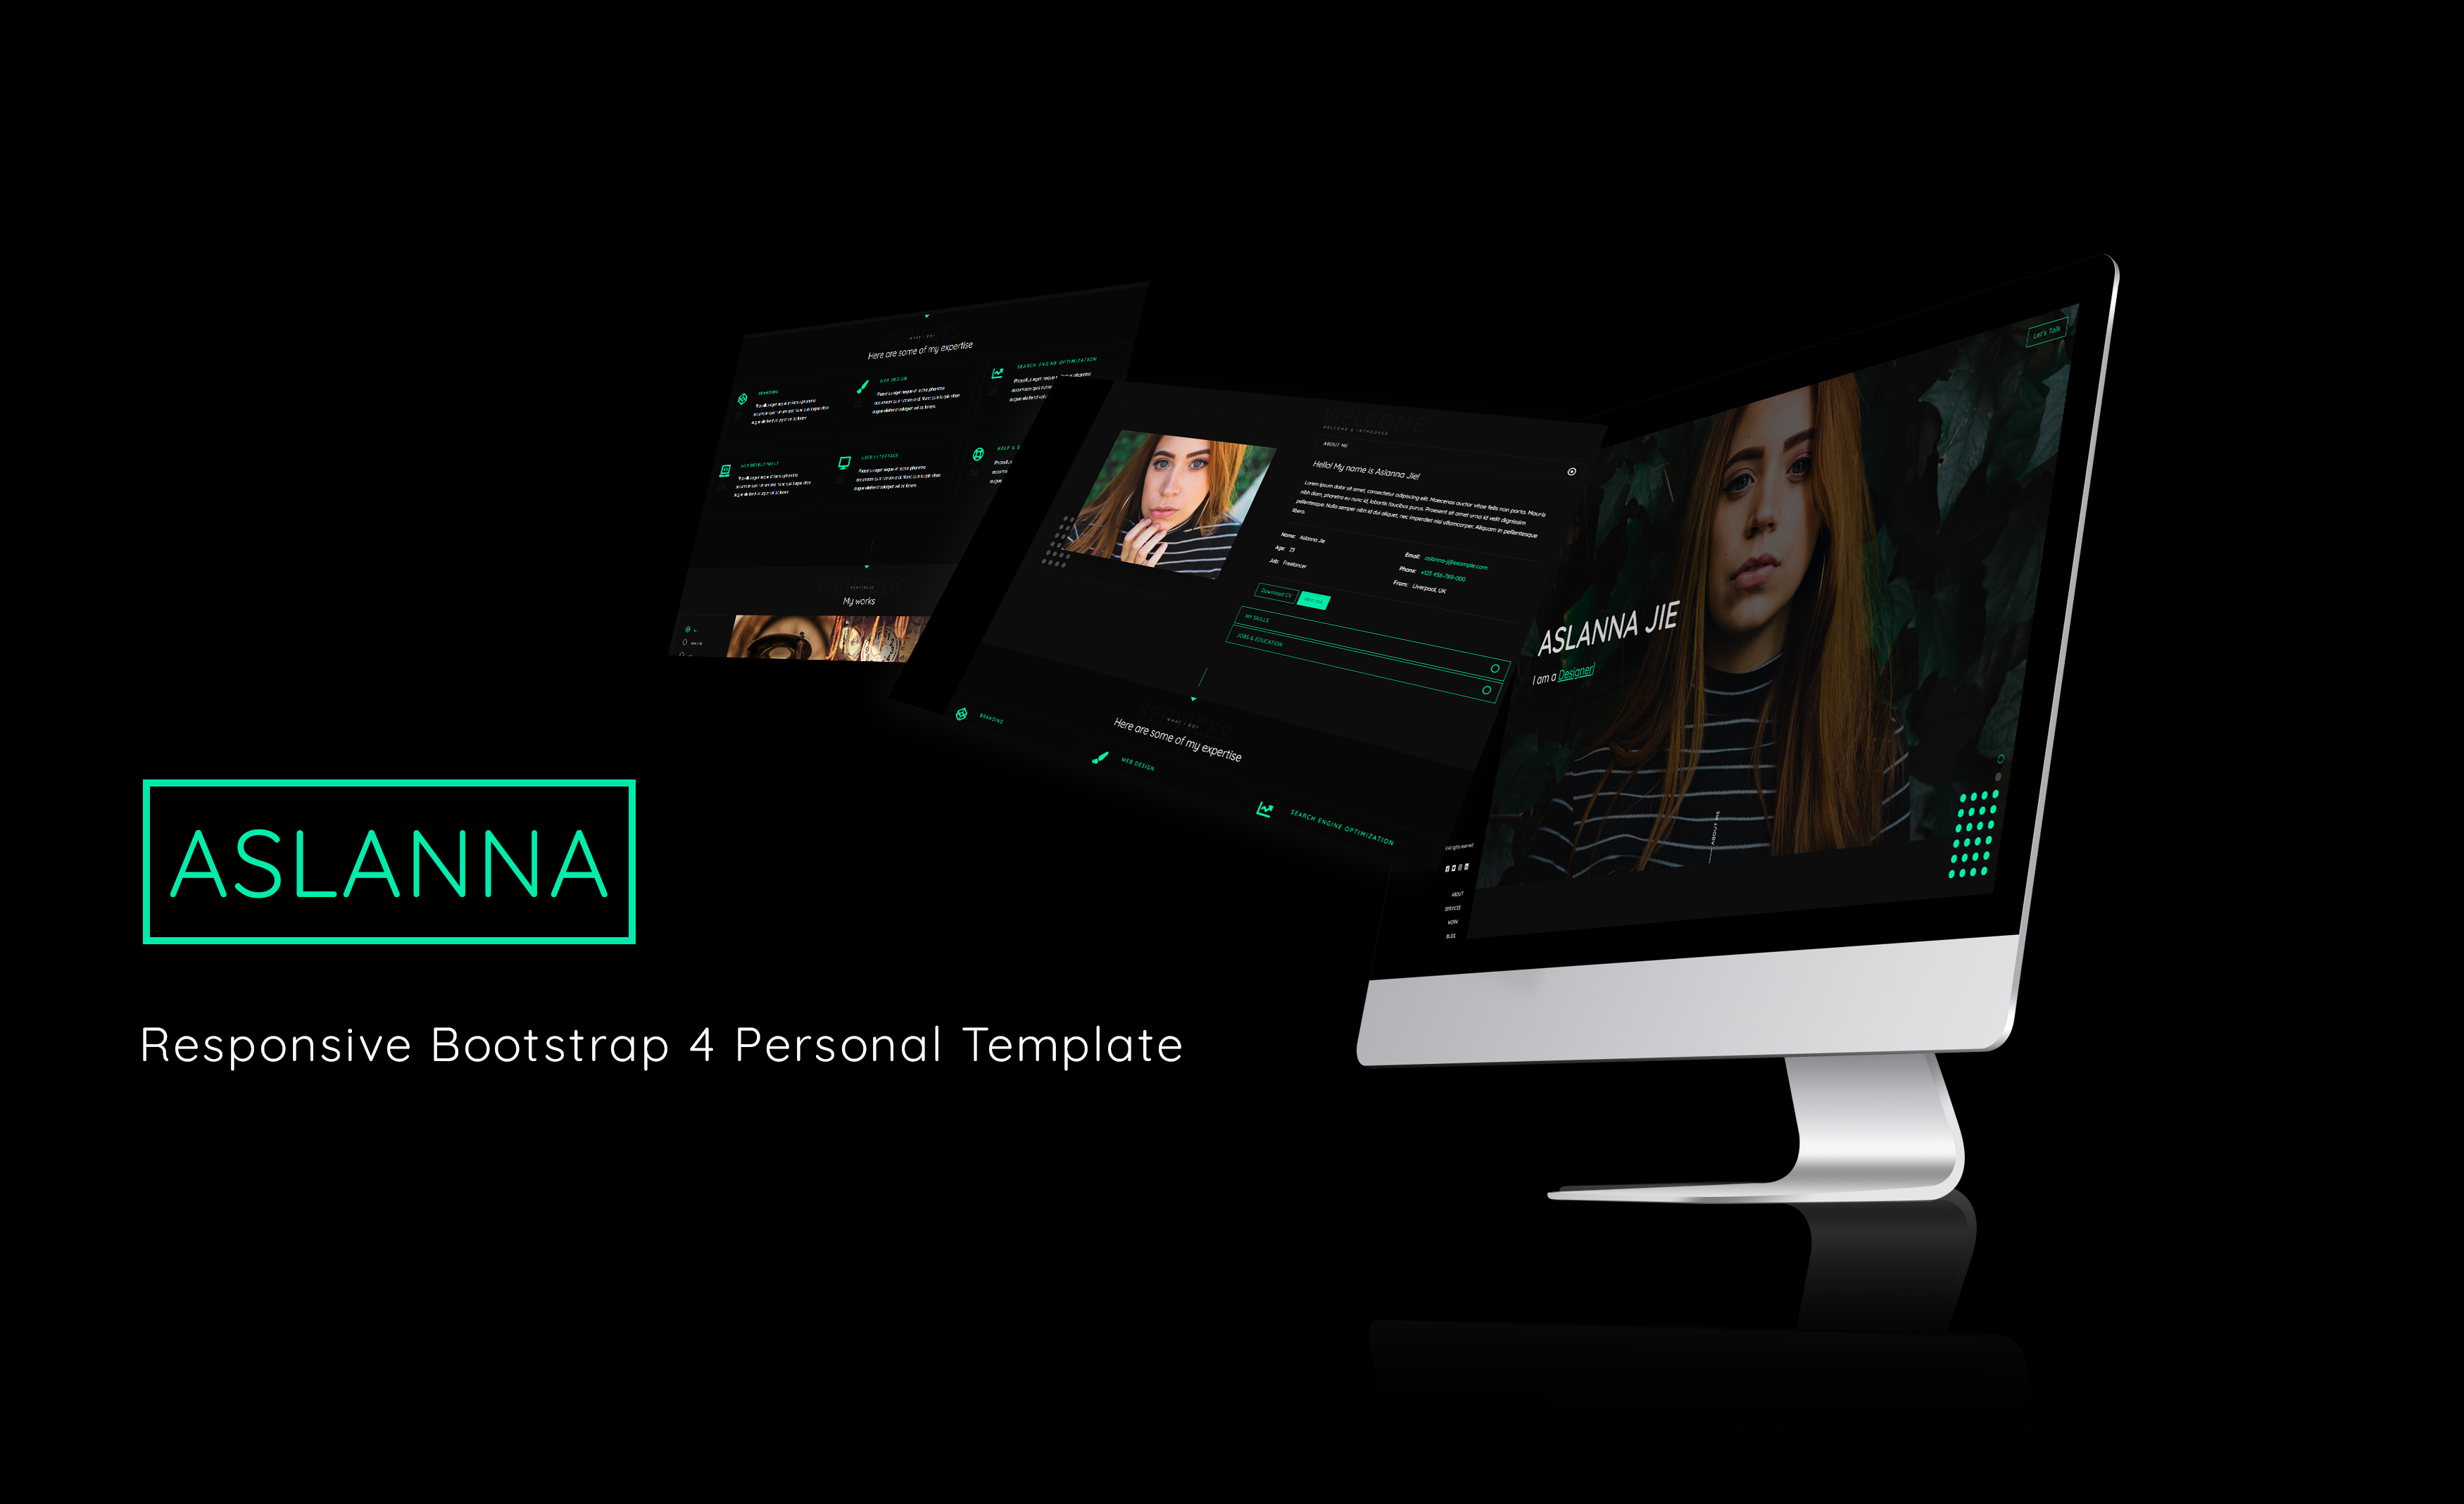 Aslanna | Responsive Bootstrap 4 Personal Template - 1